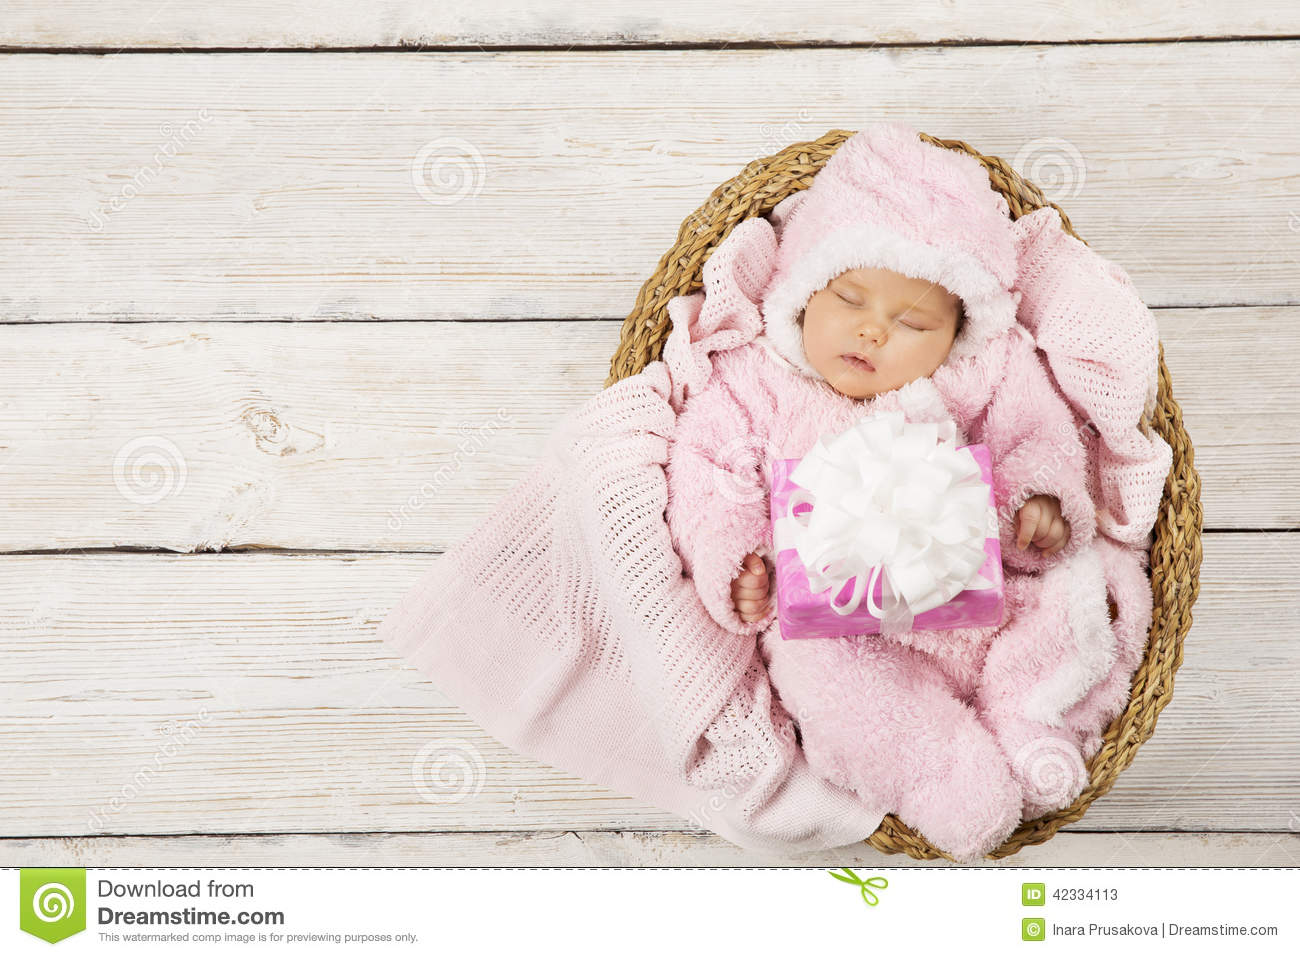 Baby girl with gift sleeping on wooden background newborn in ba download baby girl with gift sleeping on wooden background newborn in ba stock image stopboris Choice Image